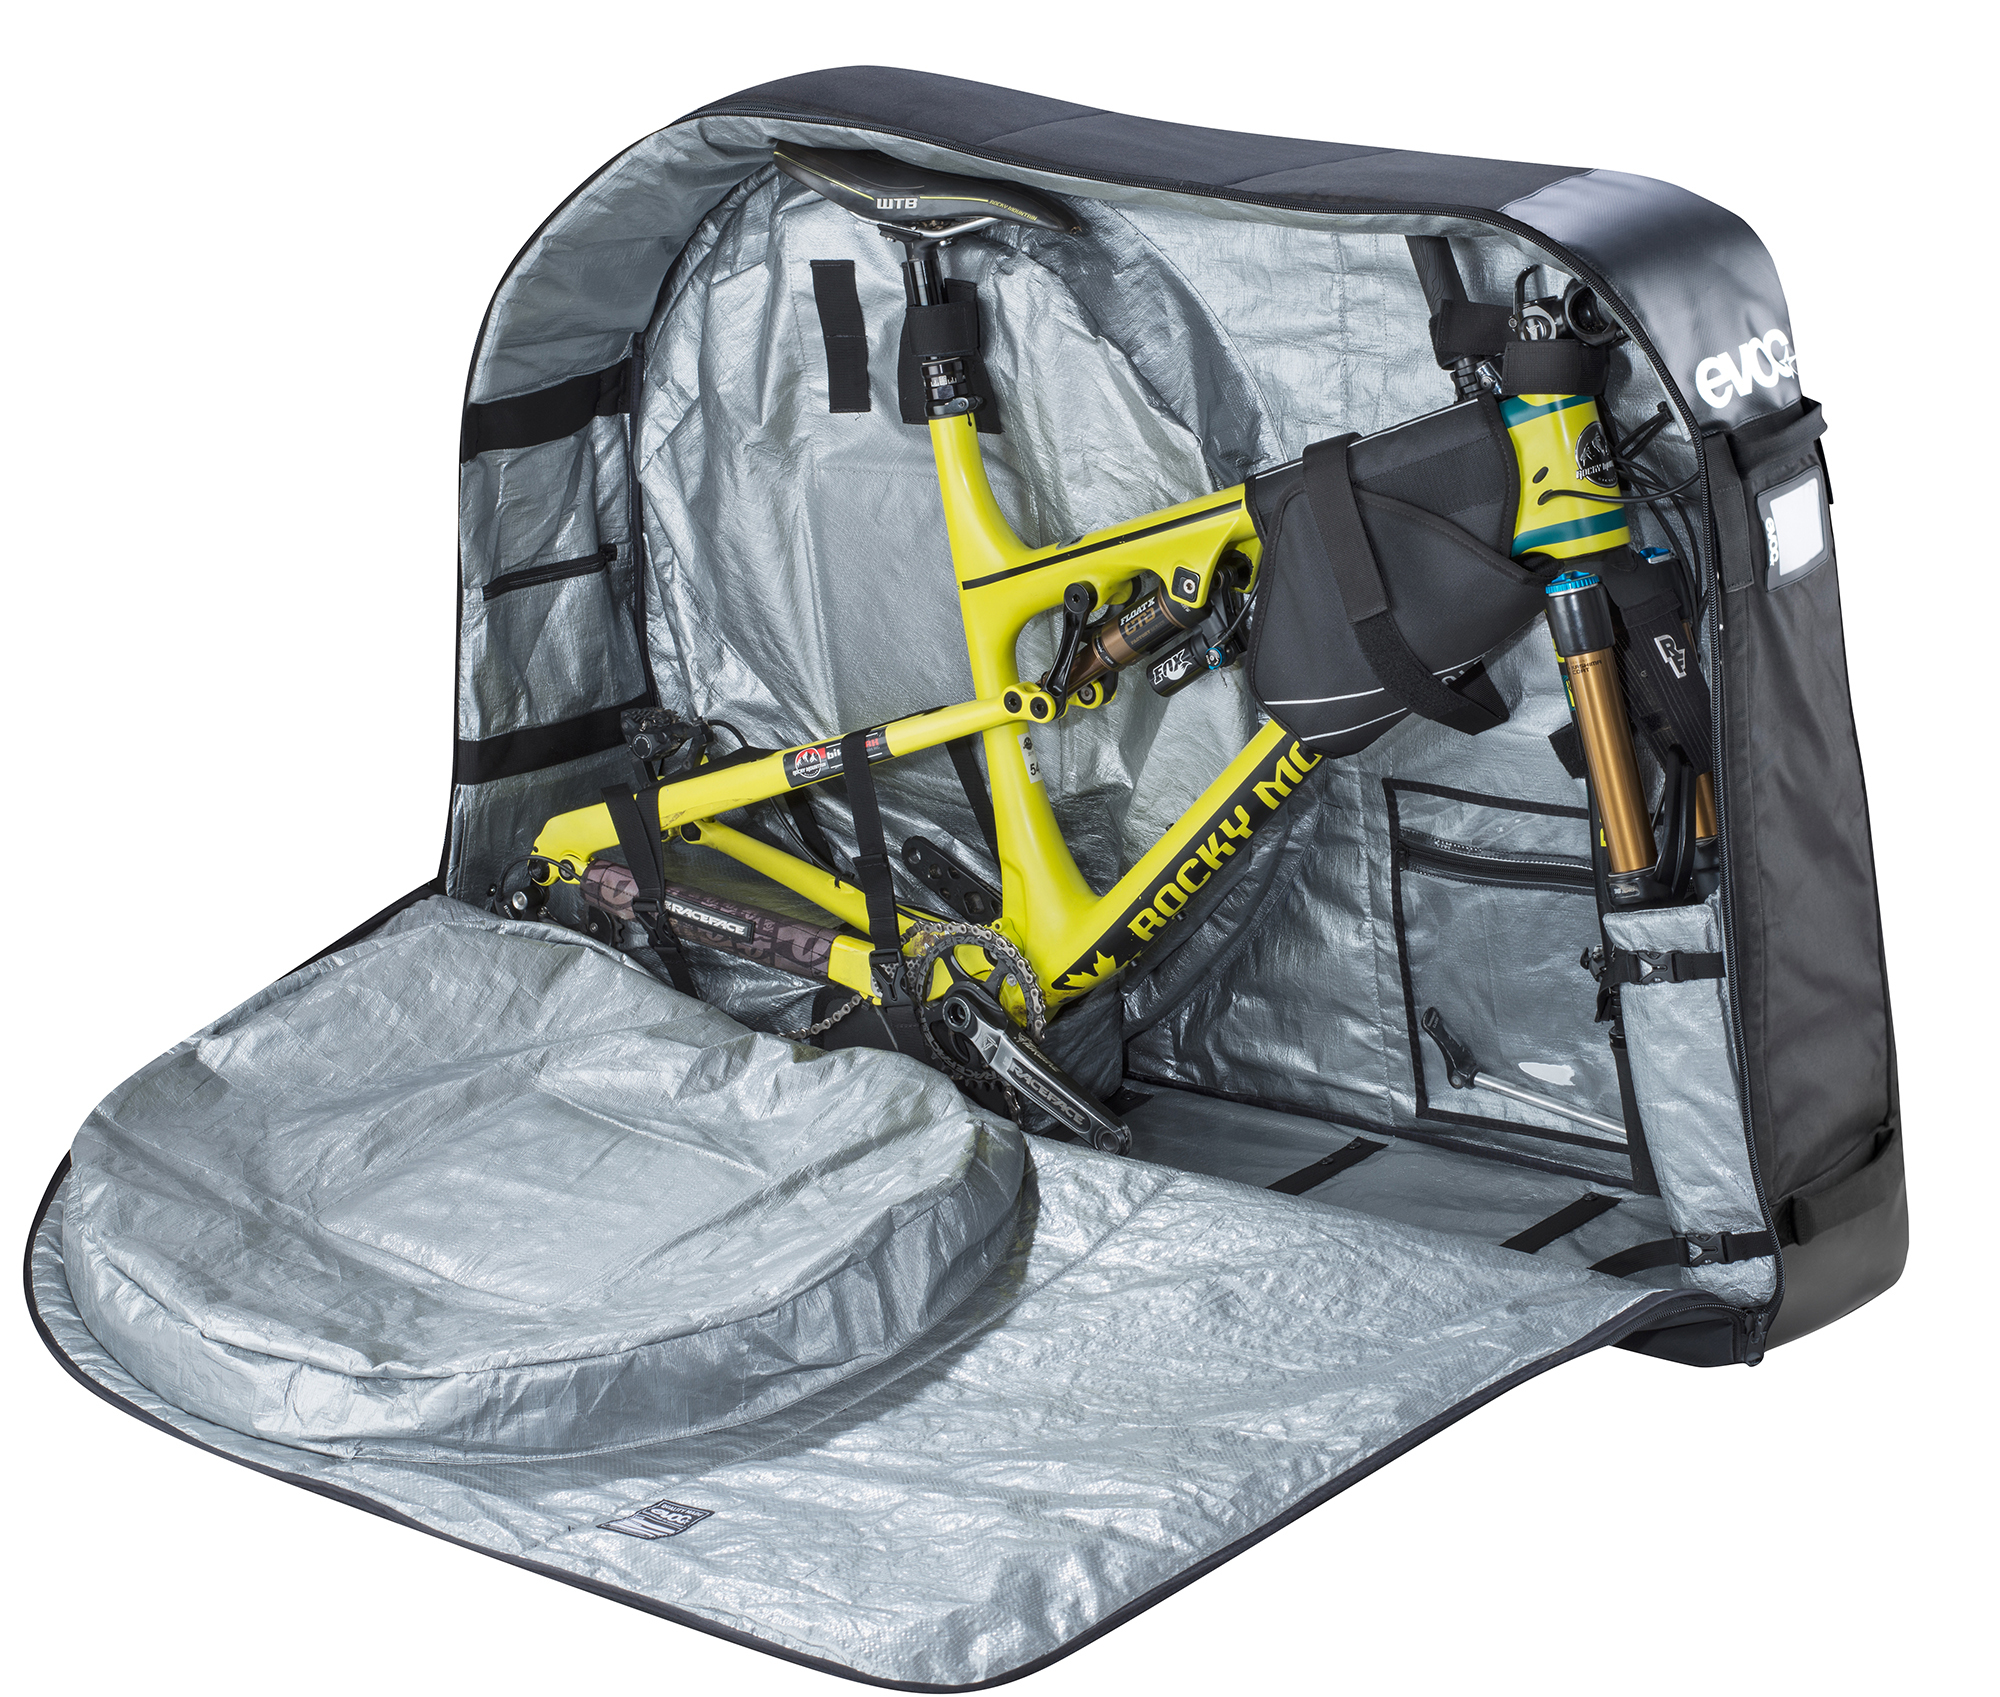 100402100-BIKE-TRAVEL-BAG-dt1